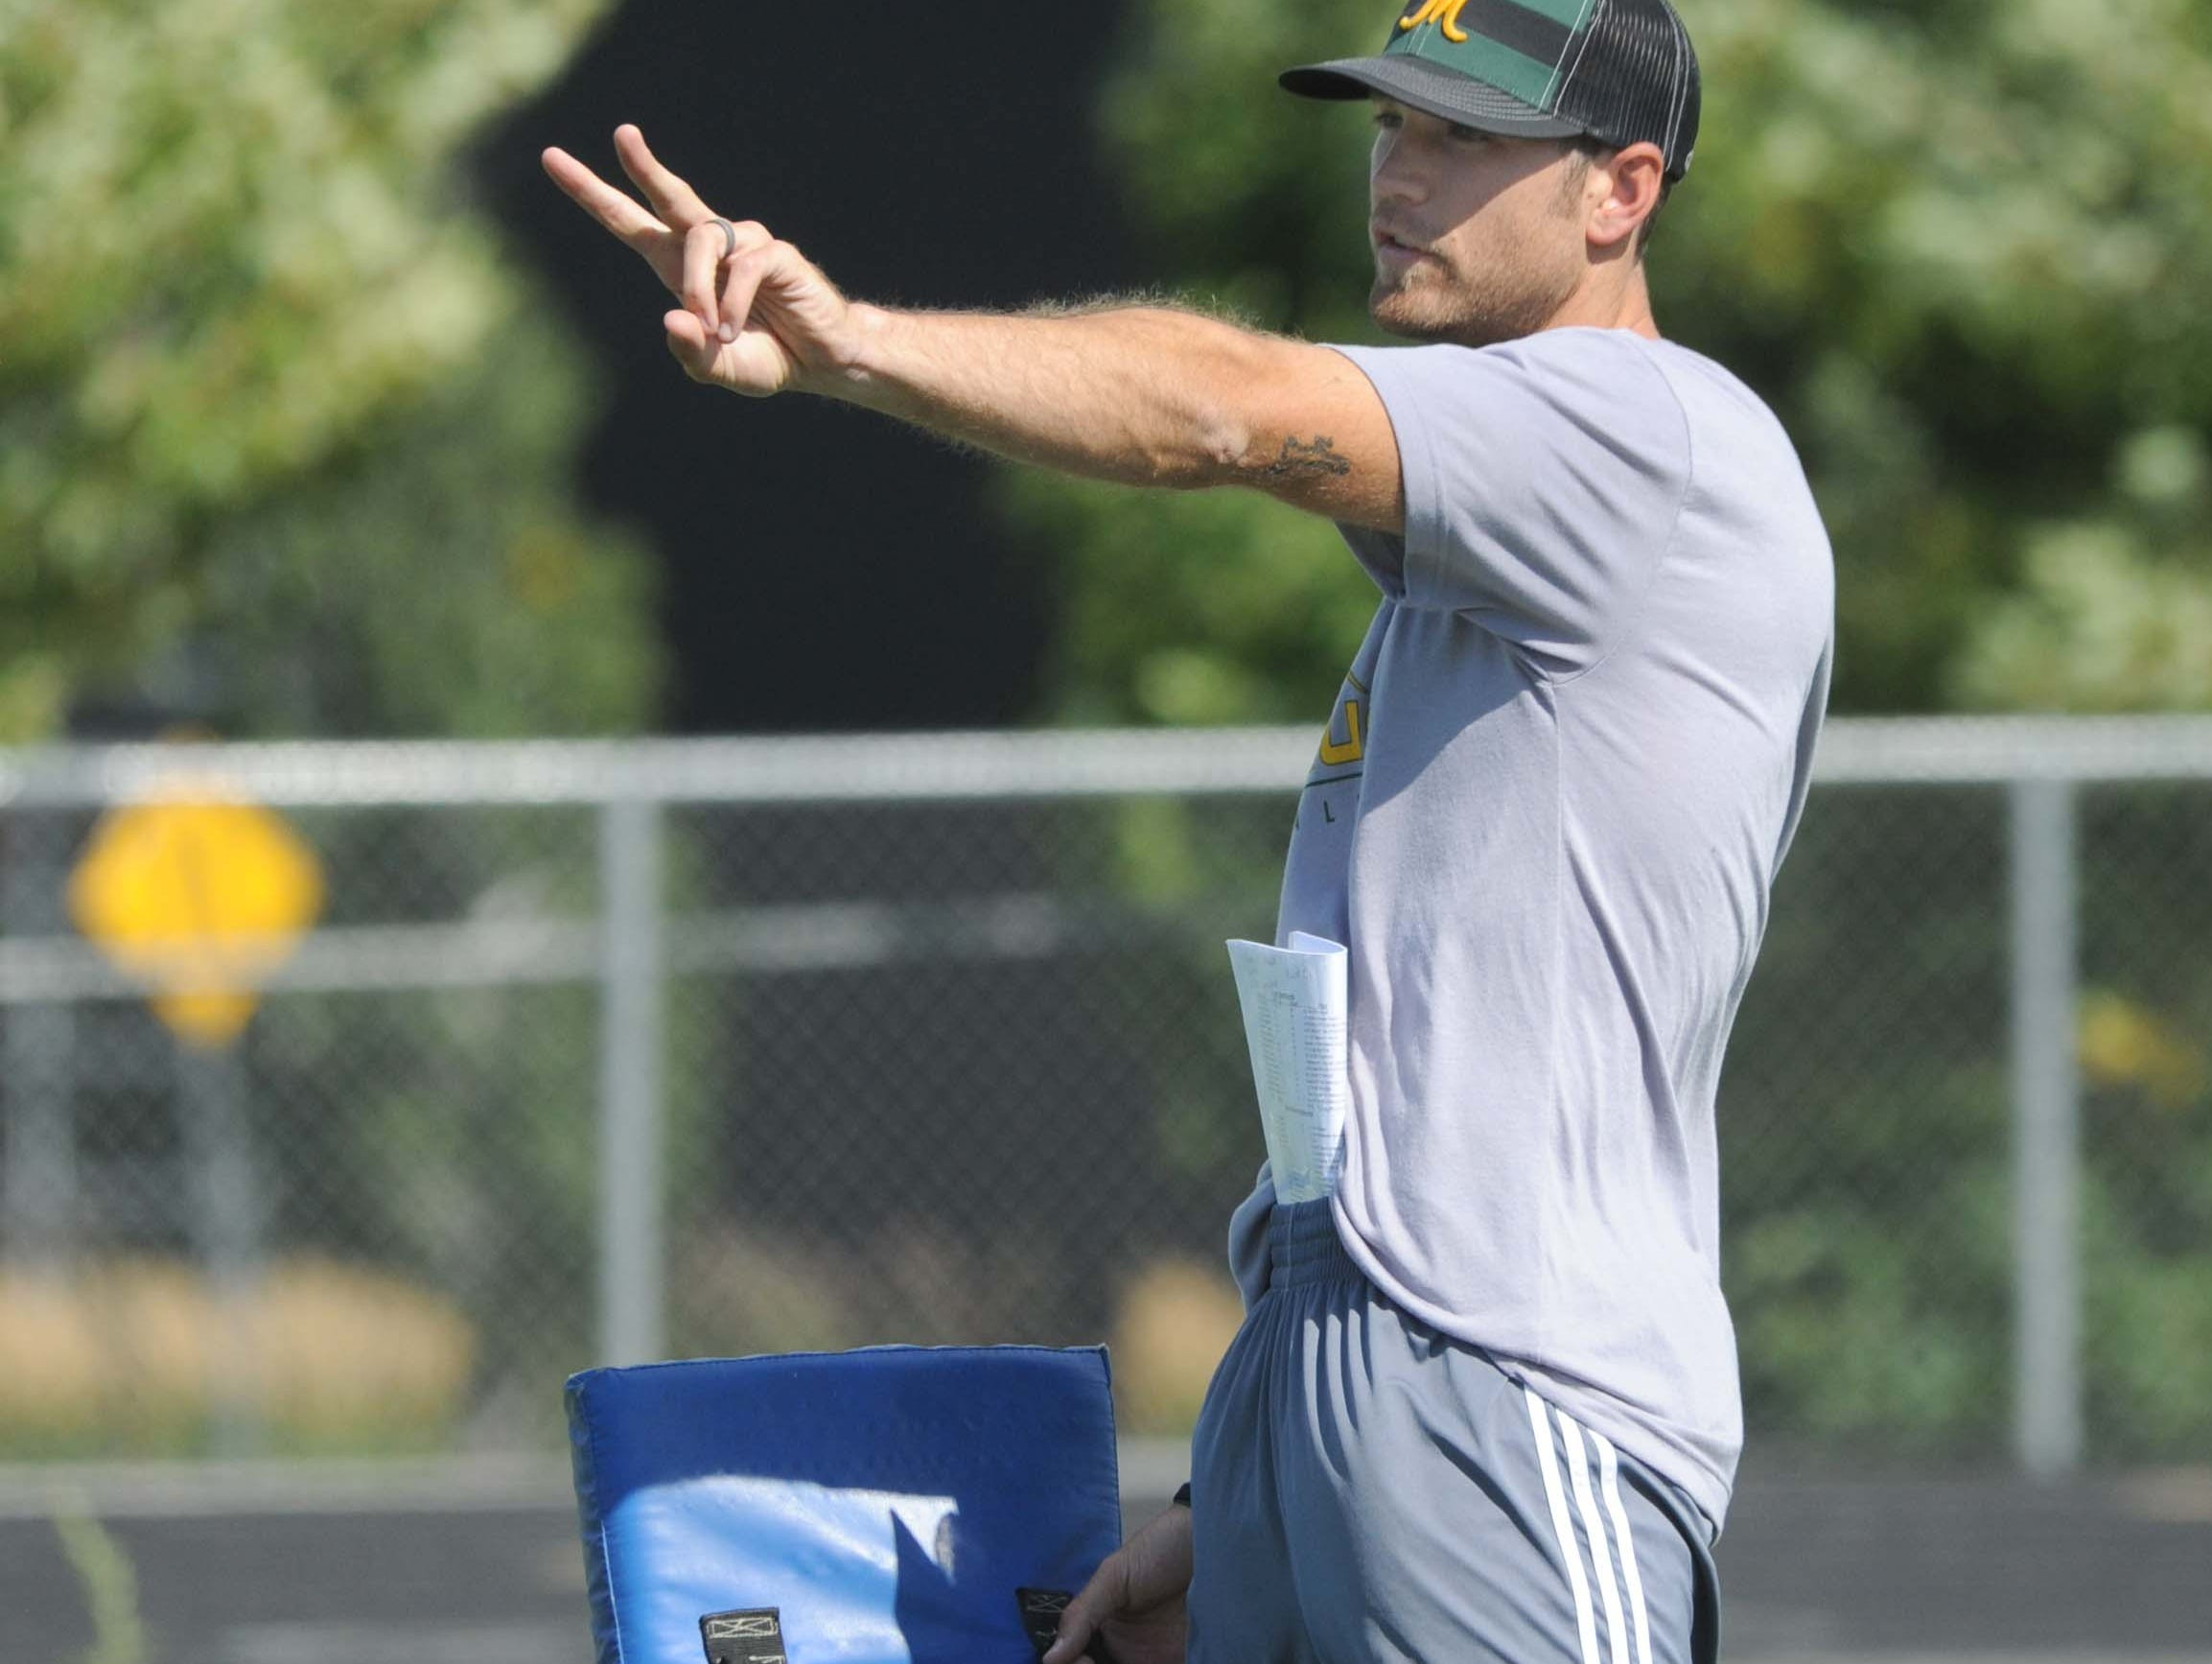 Bishop Manogue football coach Thomas Peregrin announced he will resign